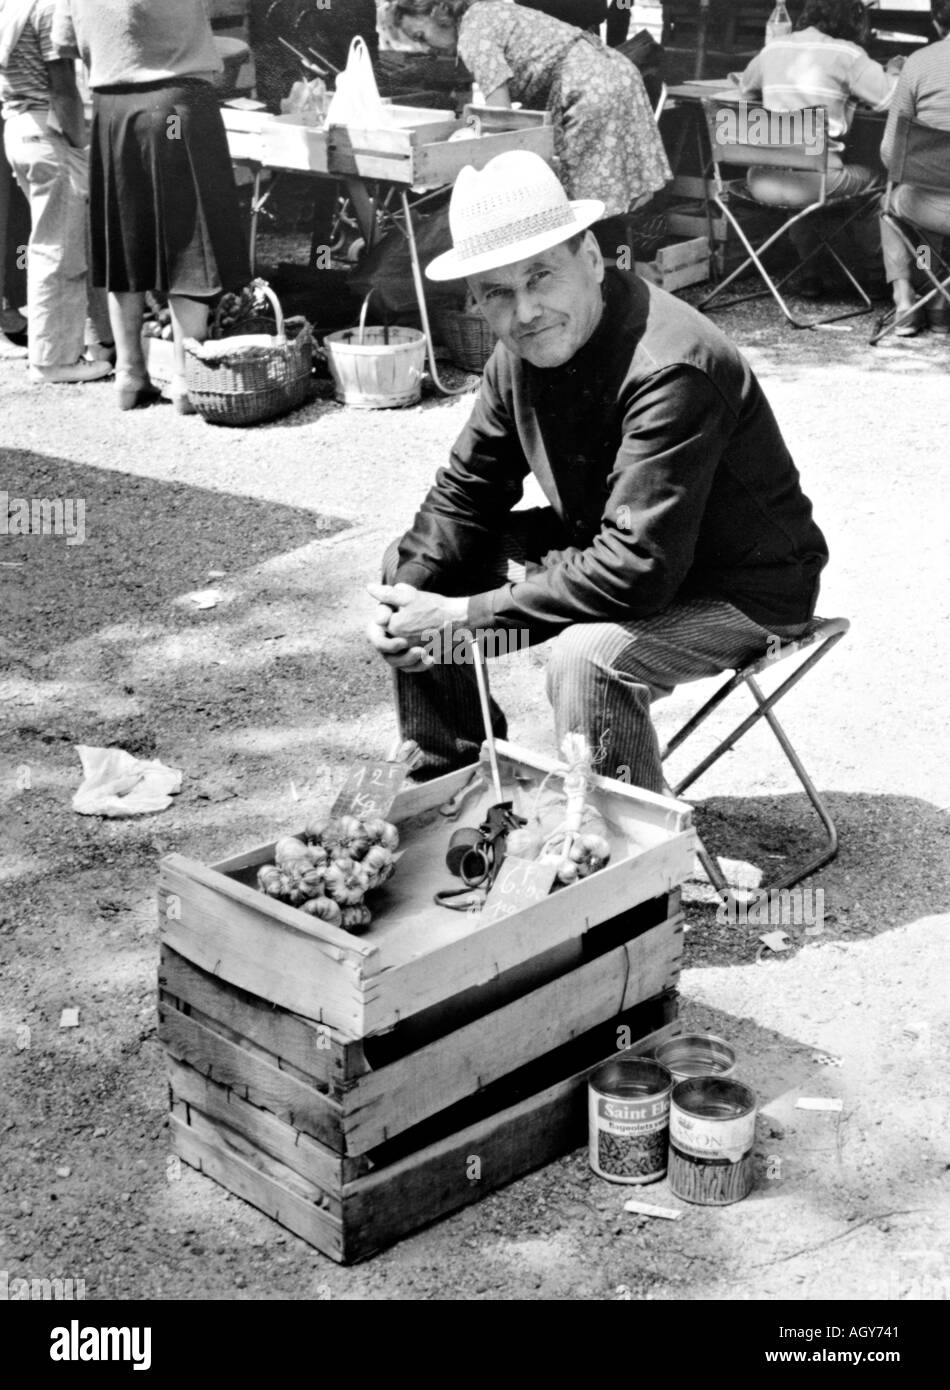 street photography man trying to sell garlic at a market in southern France - Stock Image